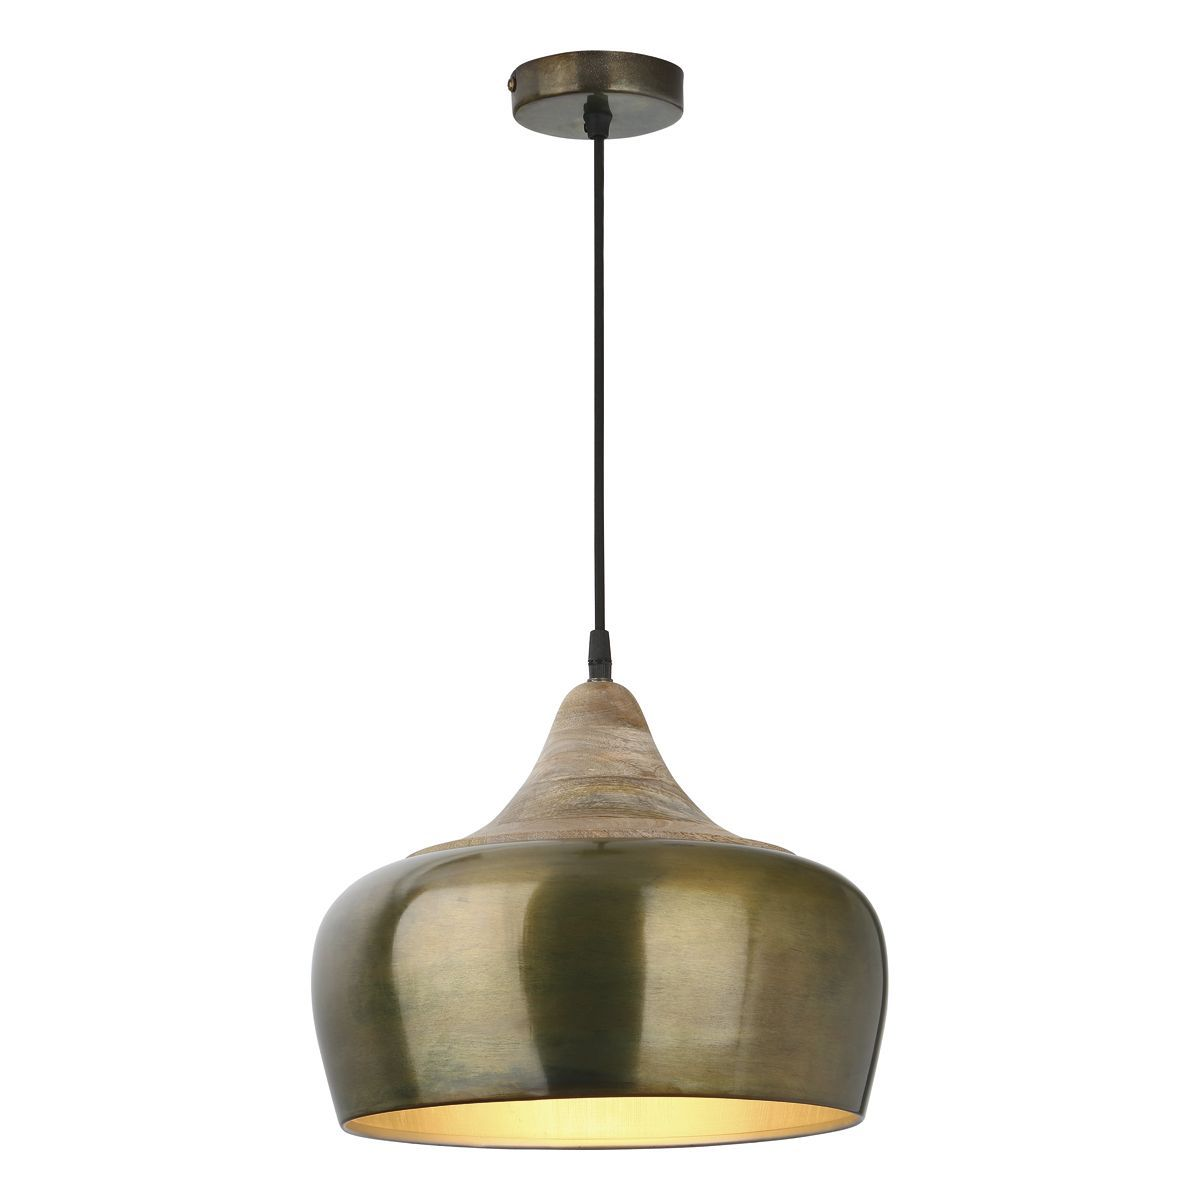 1 Light Pendant In Aged Gold With Real Wood Cowl - ID 7731